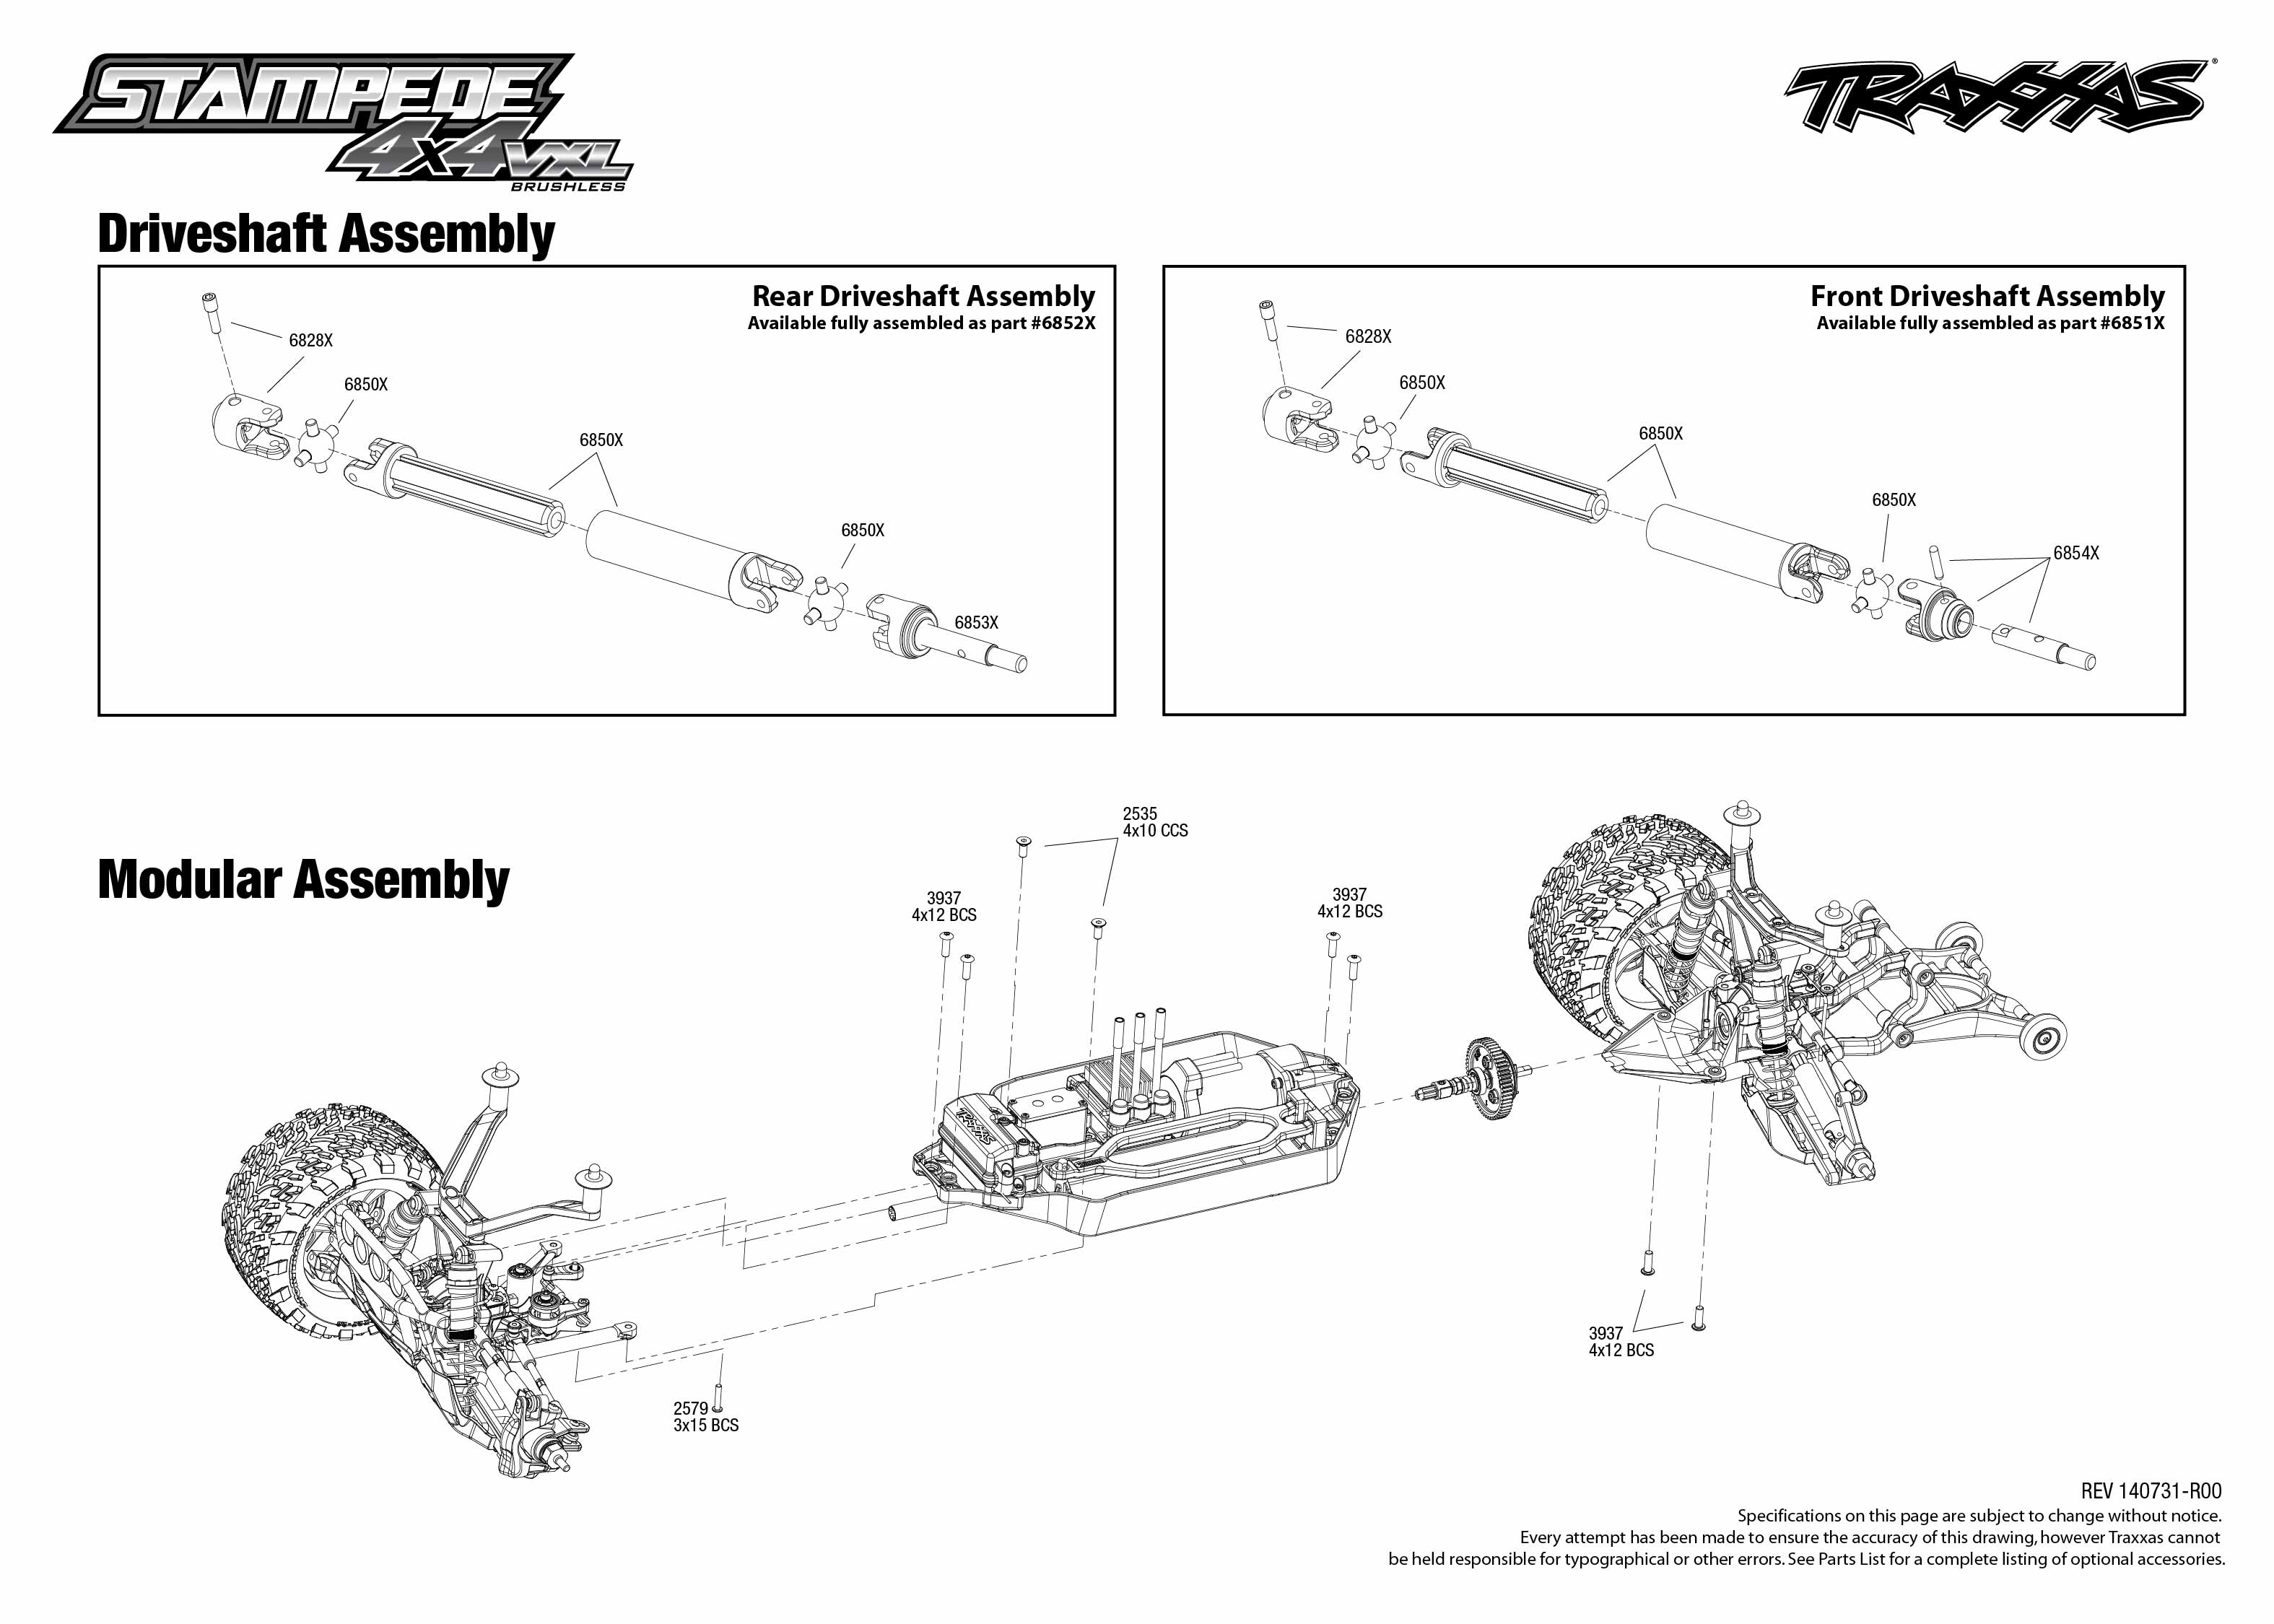 Traxxas Stampede Parts Diagram Rear Best Electrical Circuit Wiring Slash 4x4 Lzk Gallery Likewise Vxl 67086 1 Driveshaft Assembly Exploded Front 3604